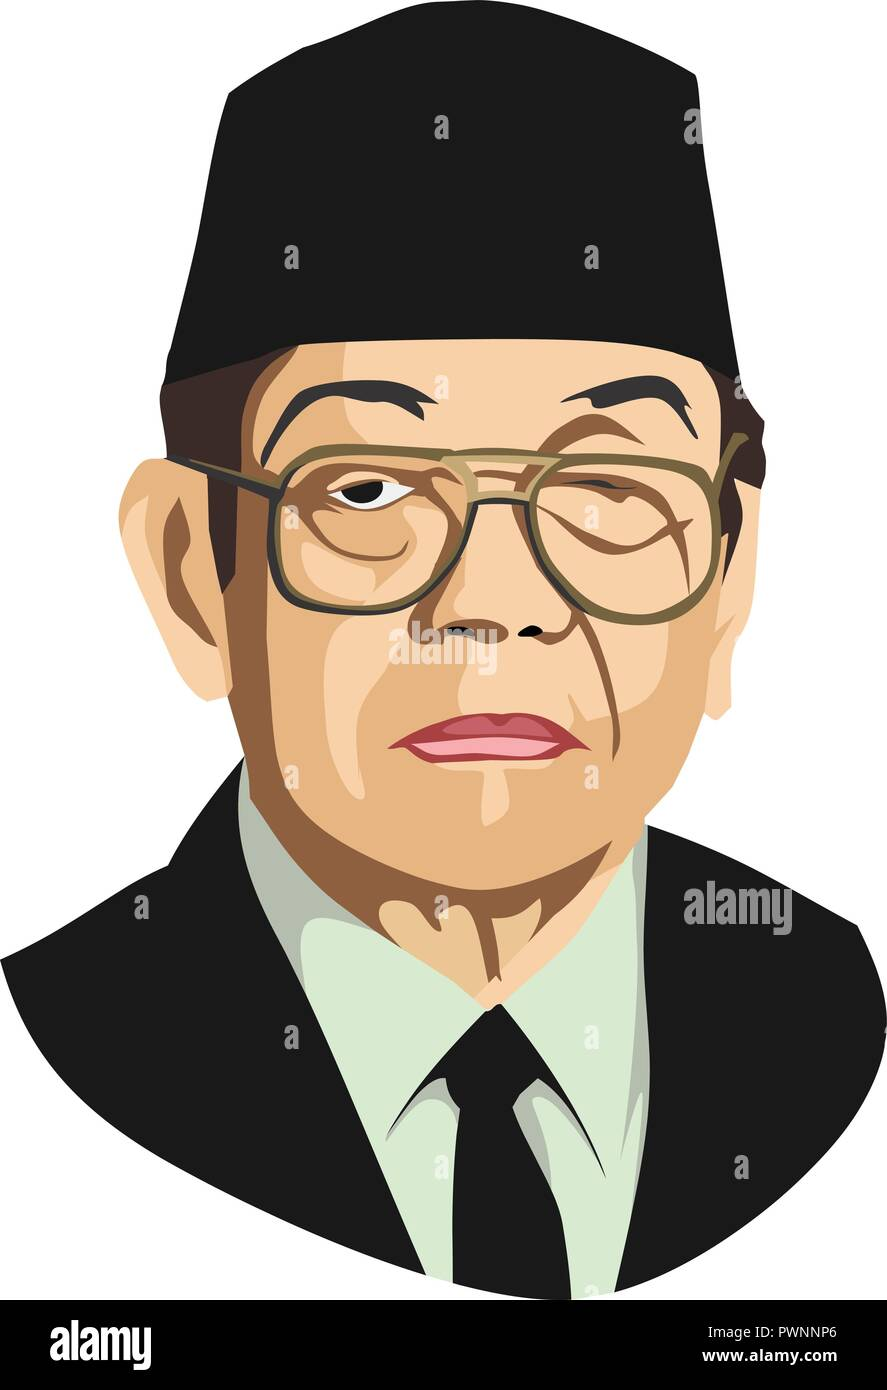 4th President Of Republic Indonesia